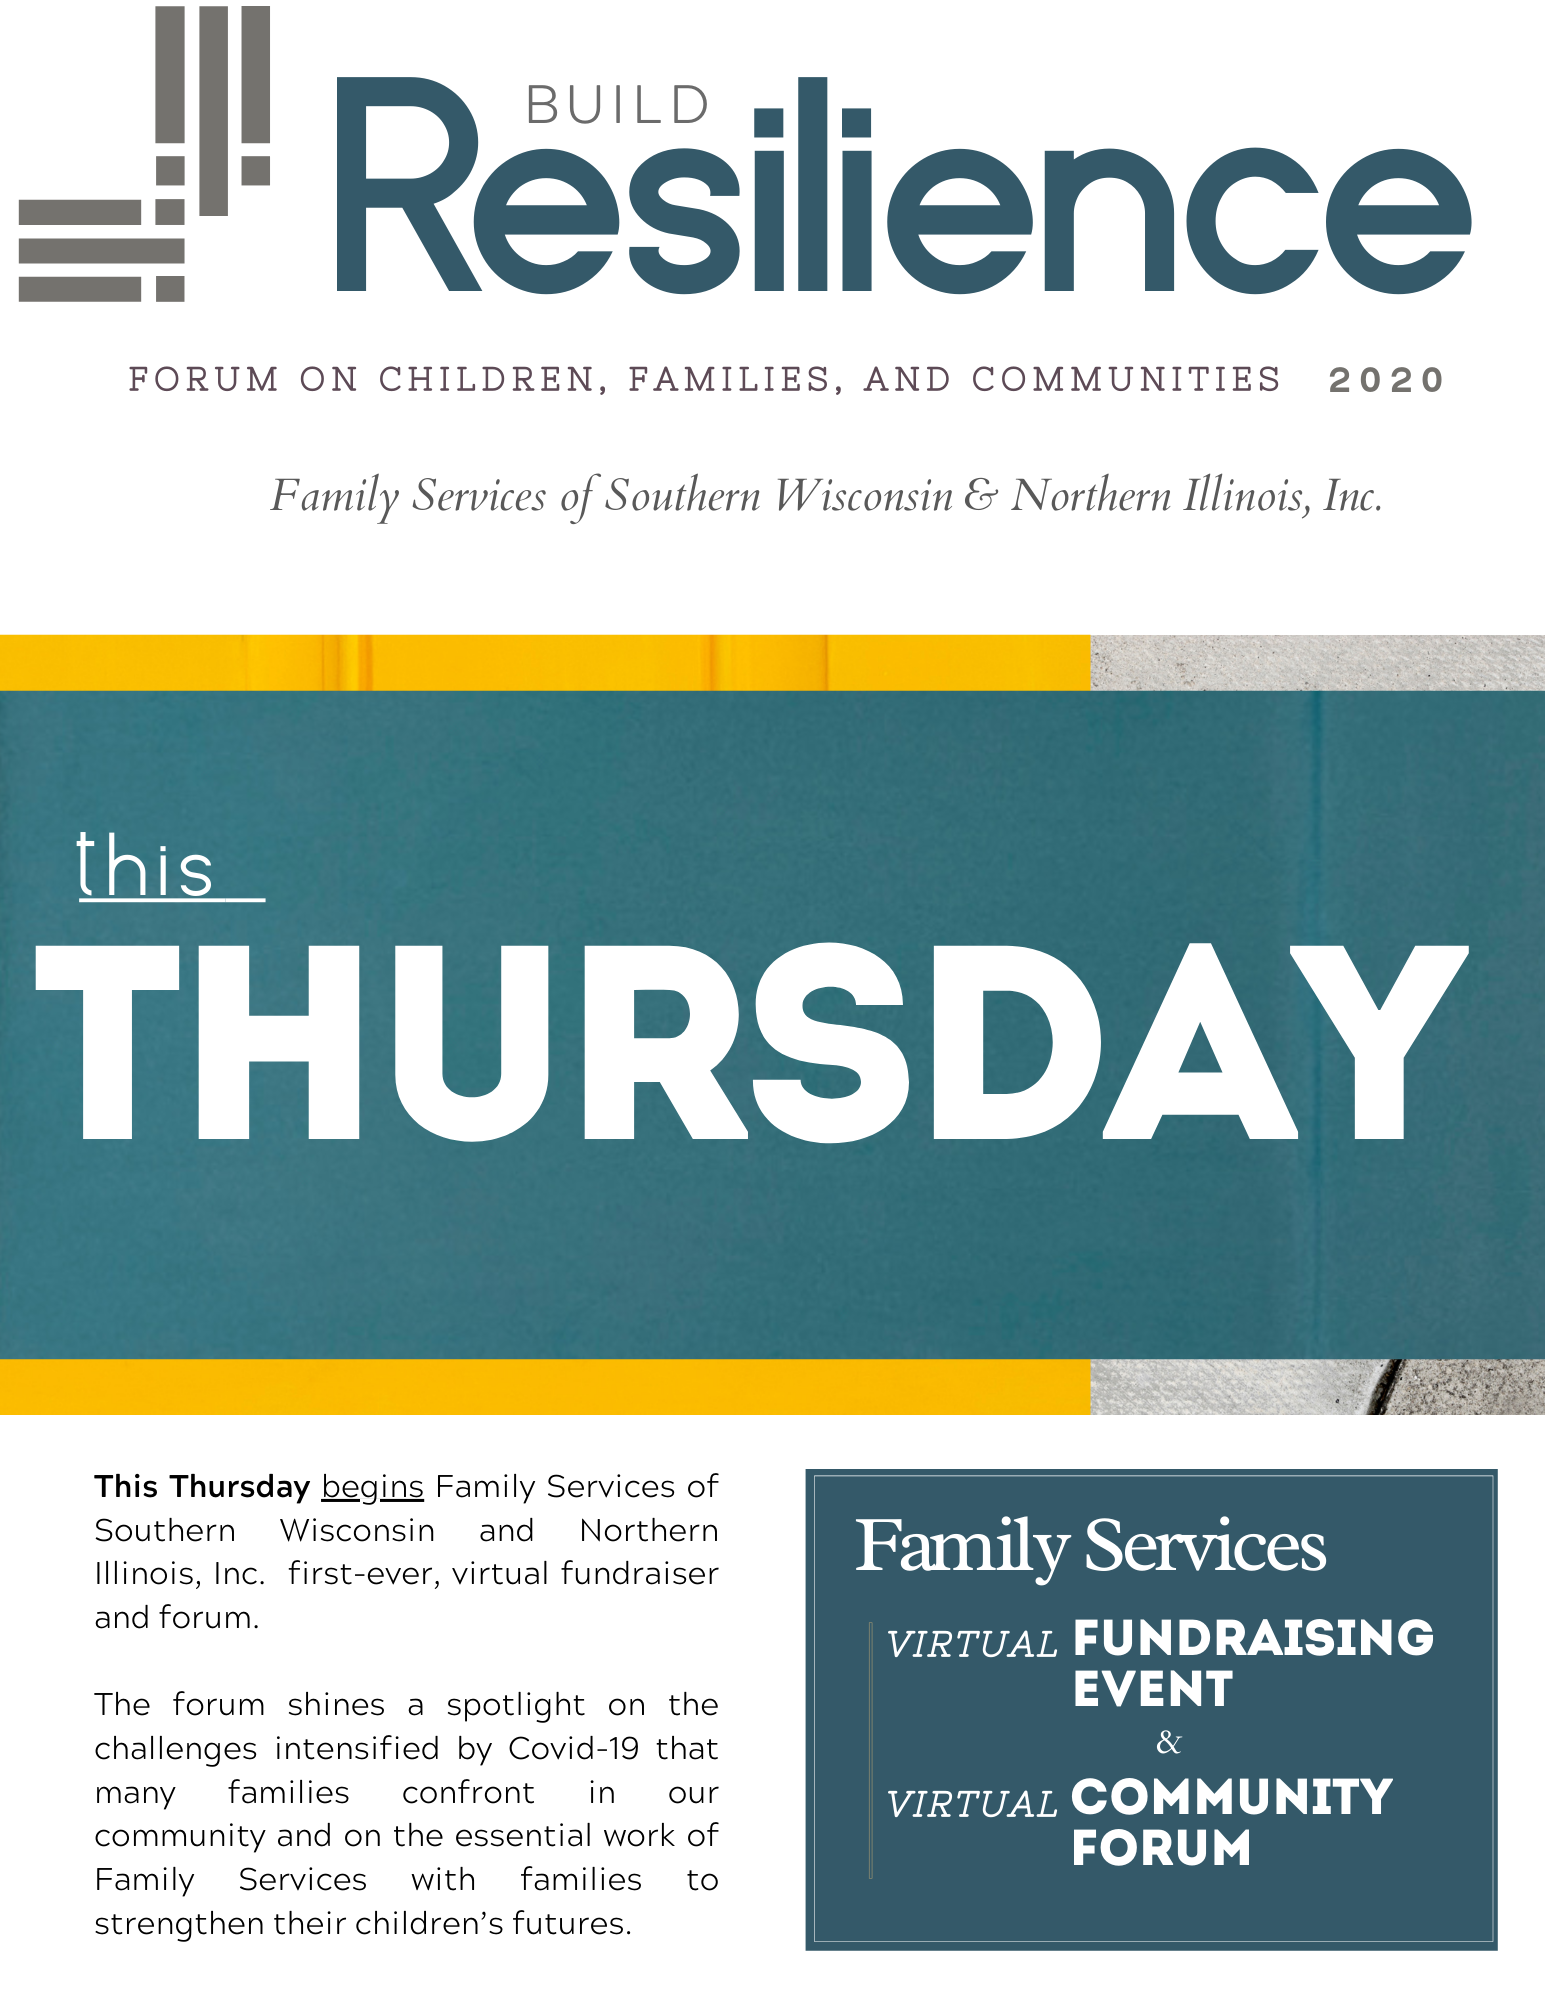 Example of email newsletters created by Owl Street Studio for Family Services of Beloit Wisconsin's fall fundraising event